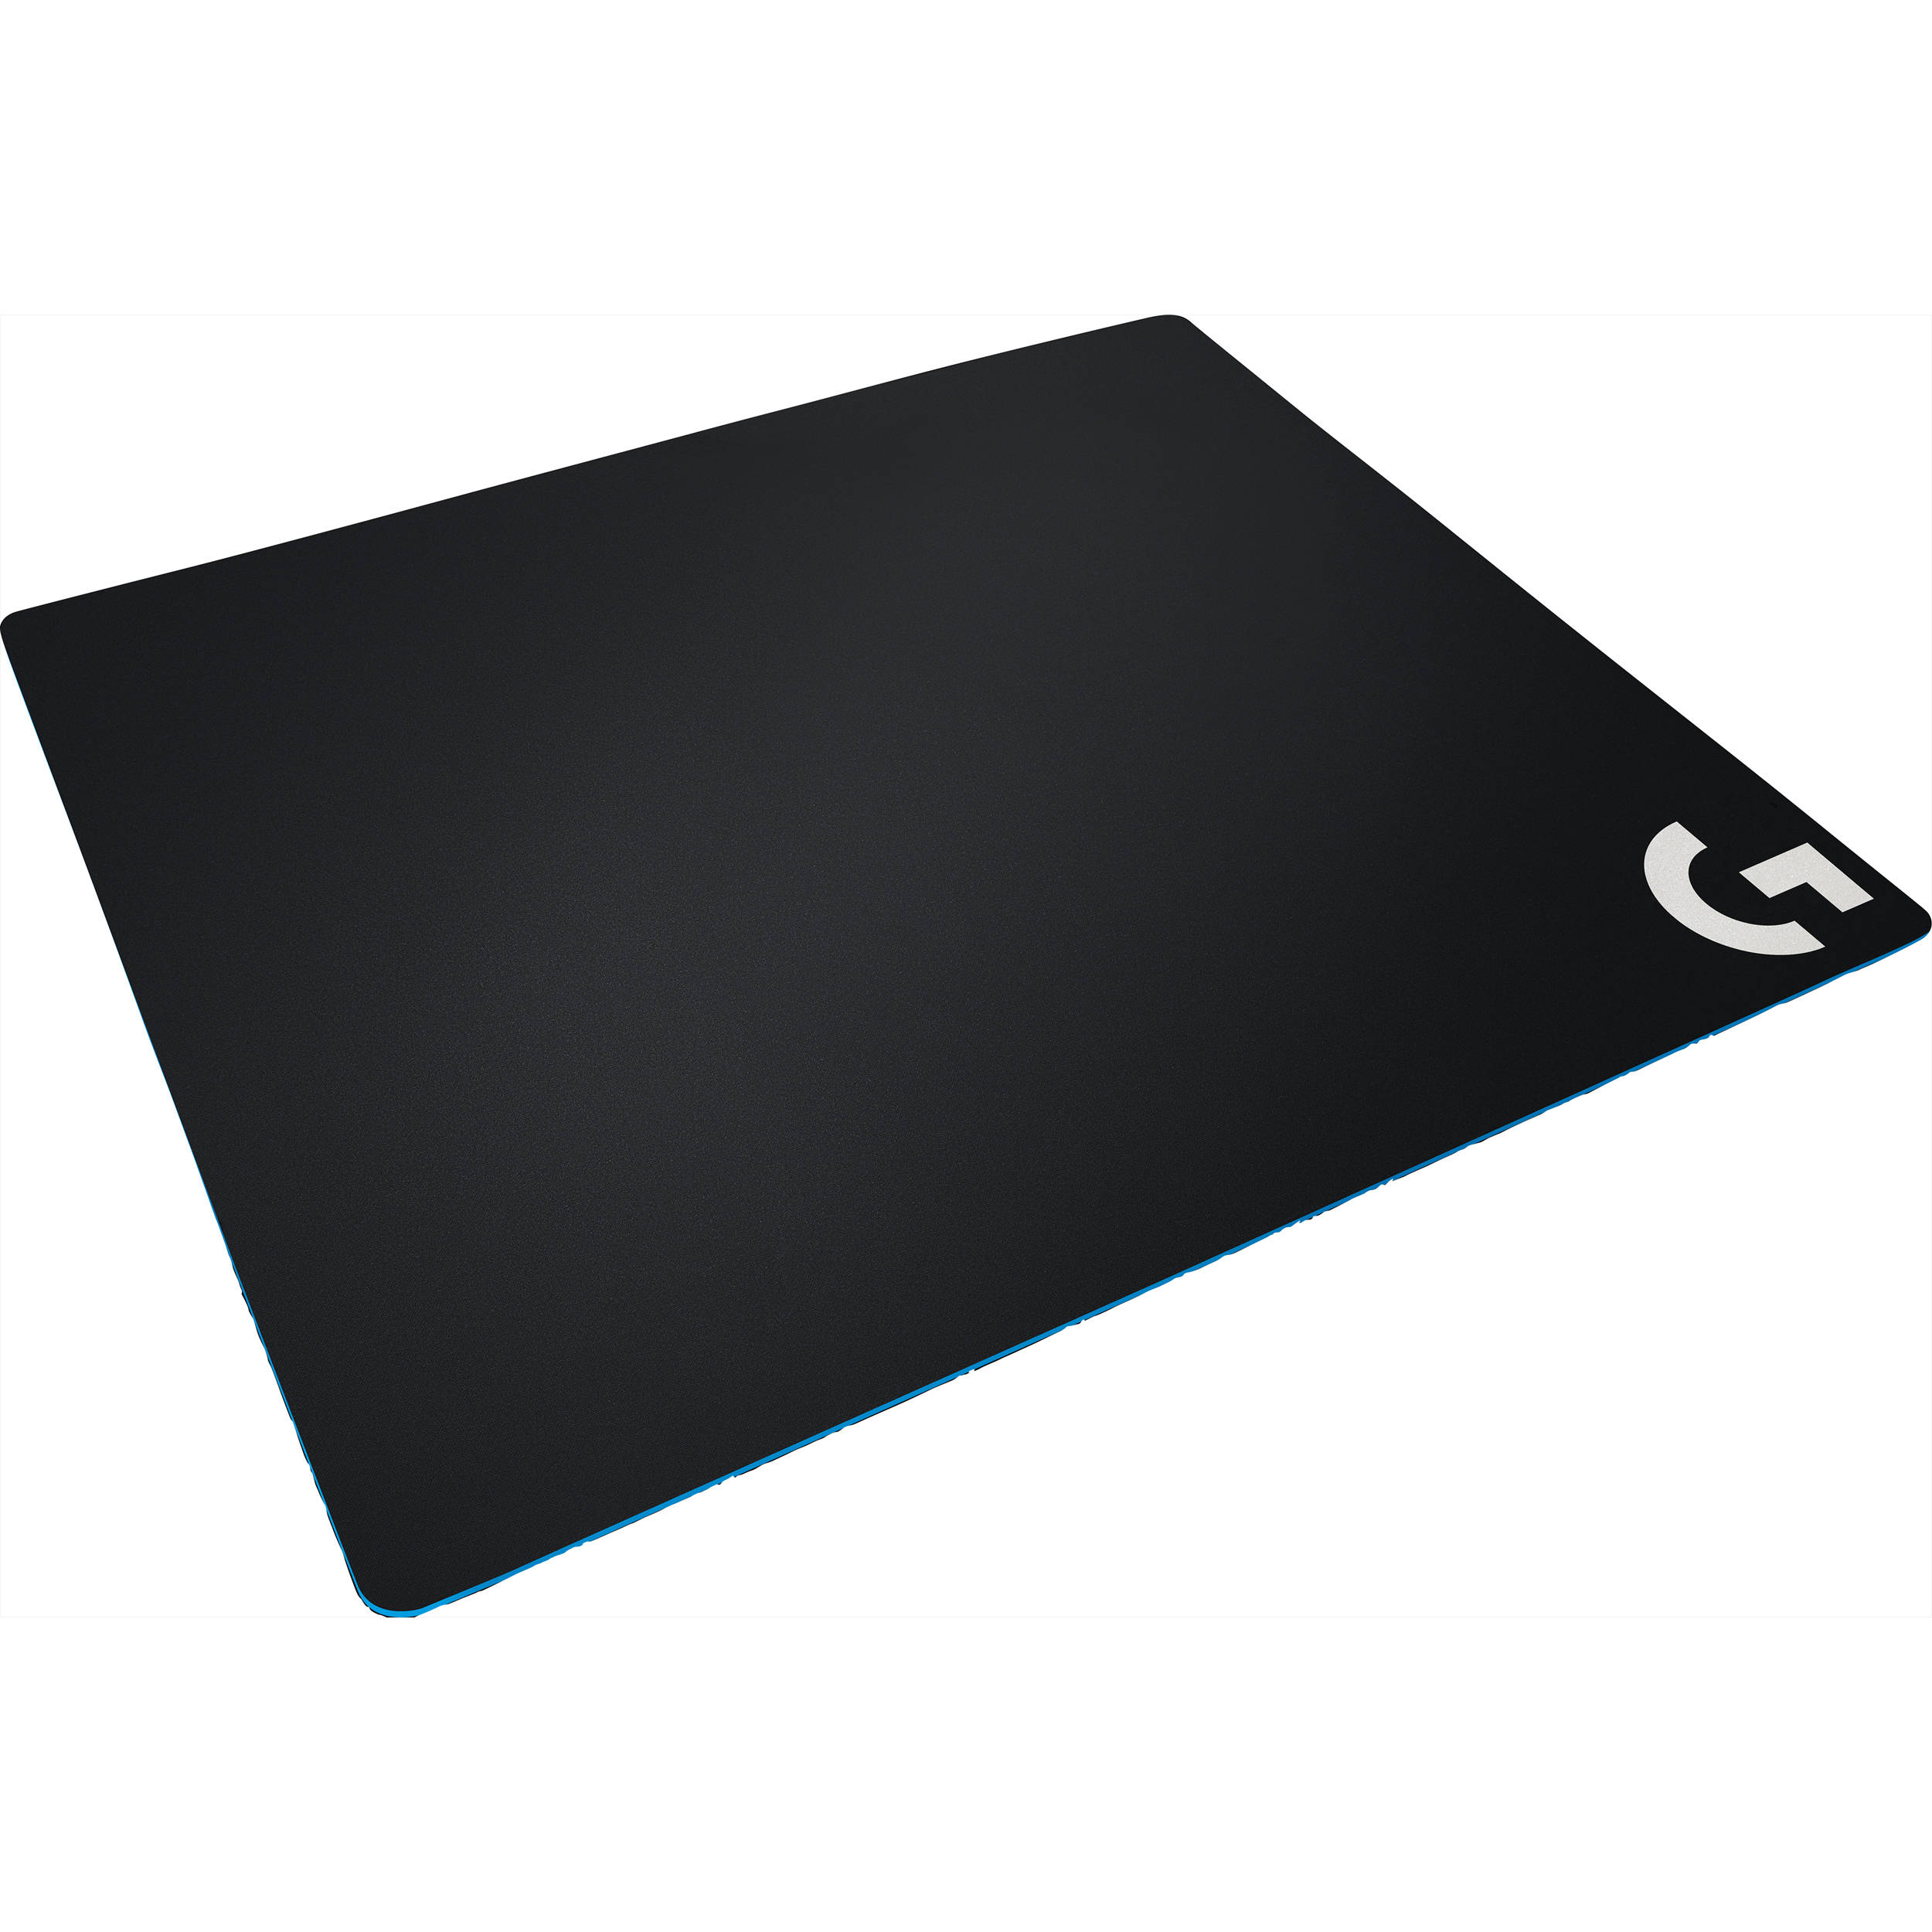 Logitech G640 Large Cloth Gaming Mouse Pad 943 000088 Bh Photo Circuit Board Motherboard Geekery